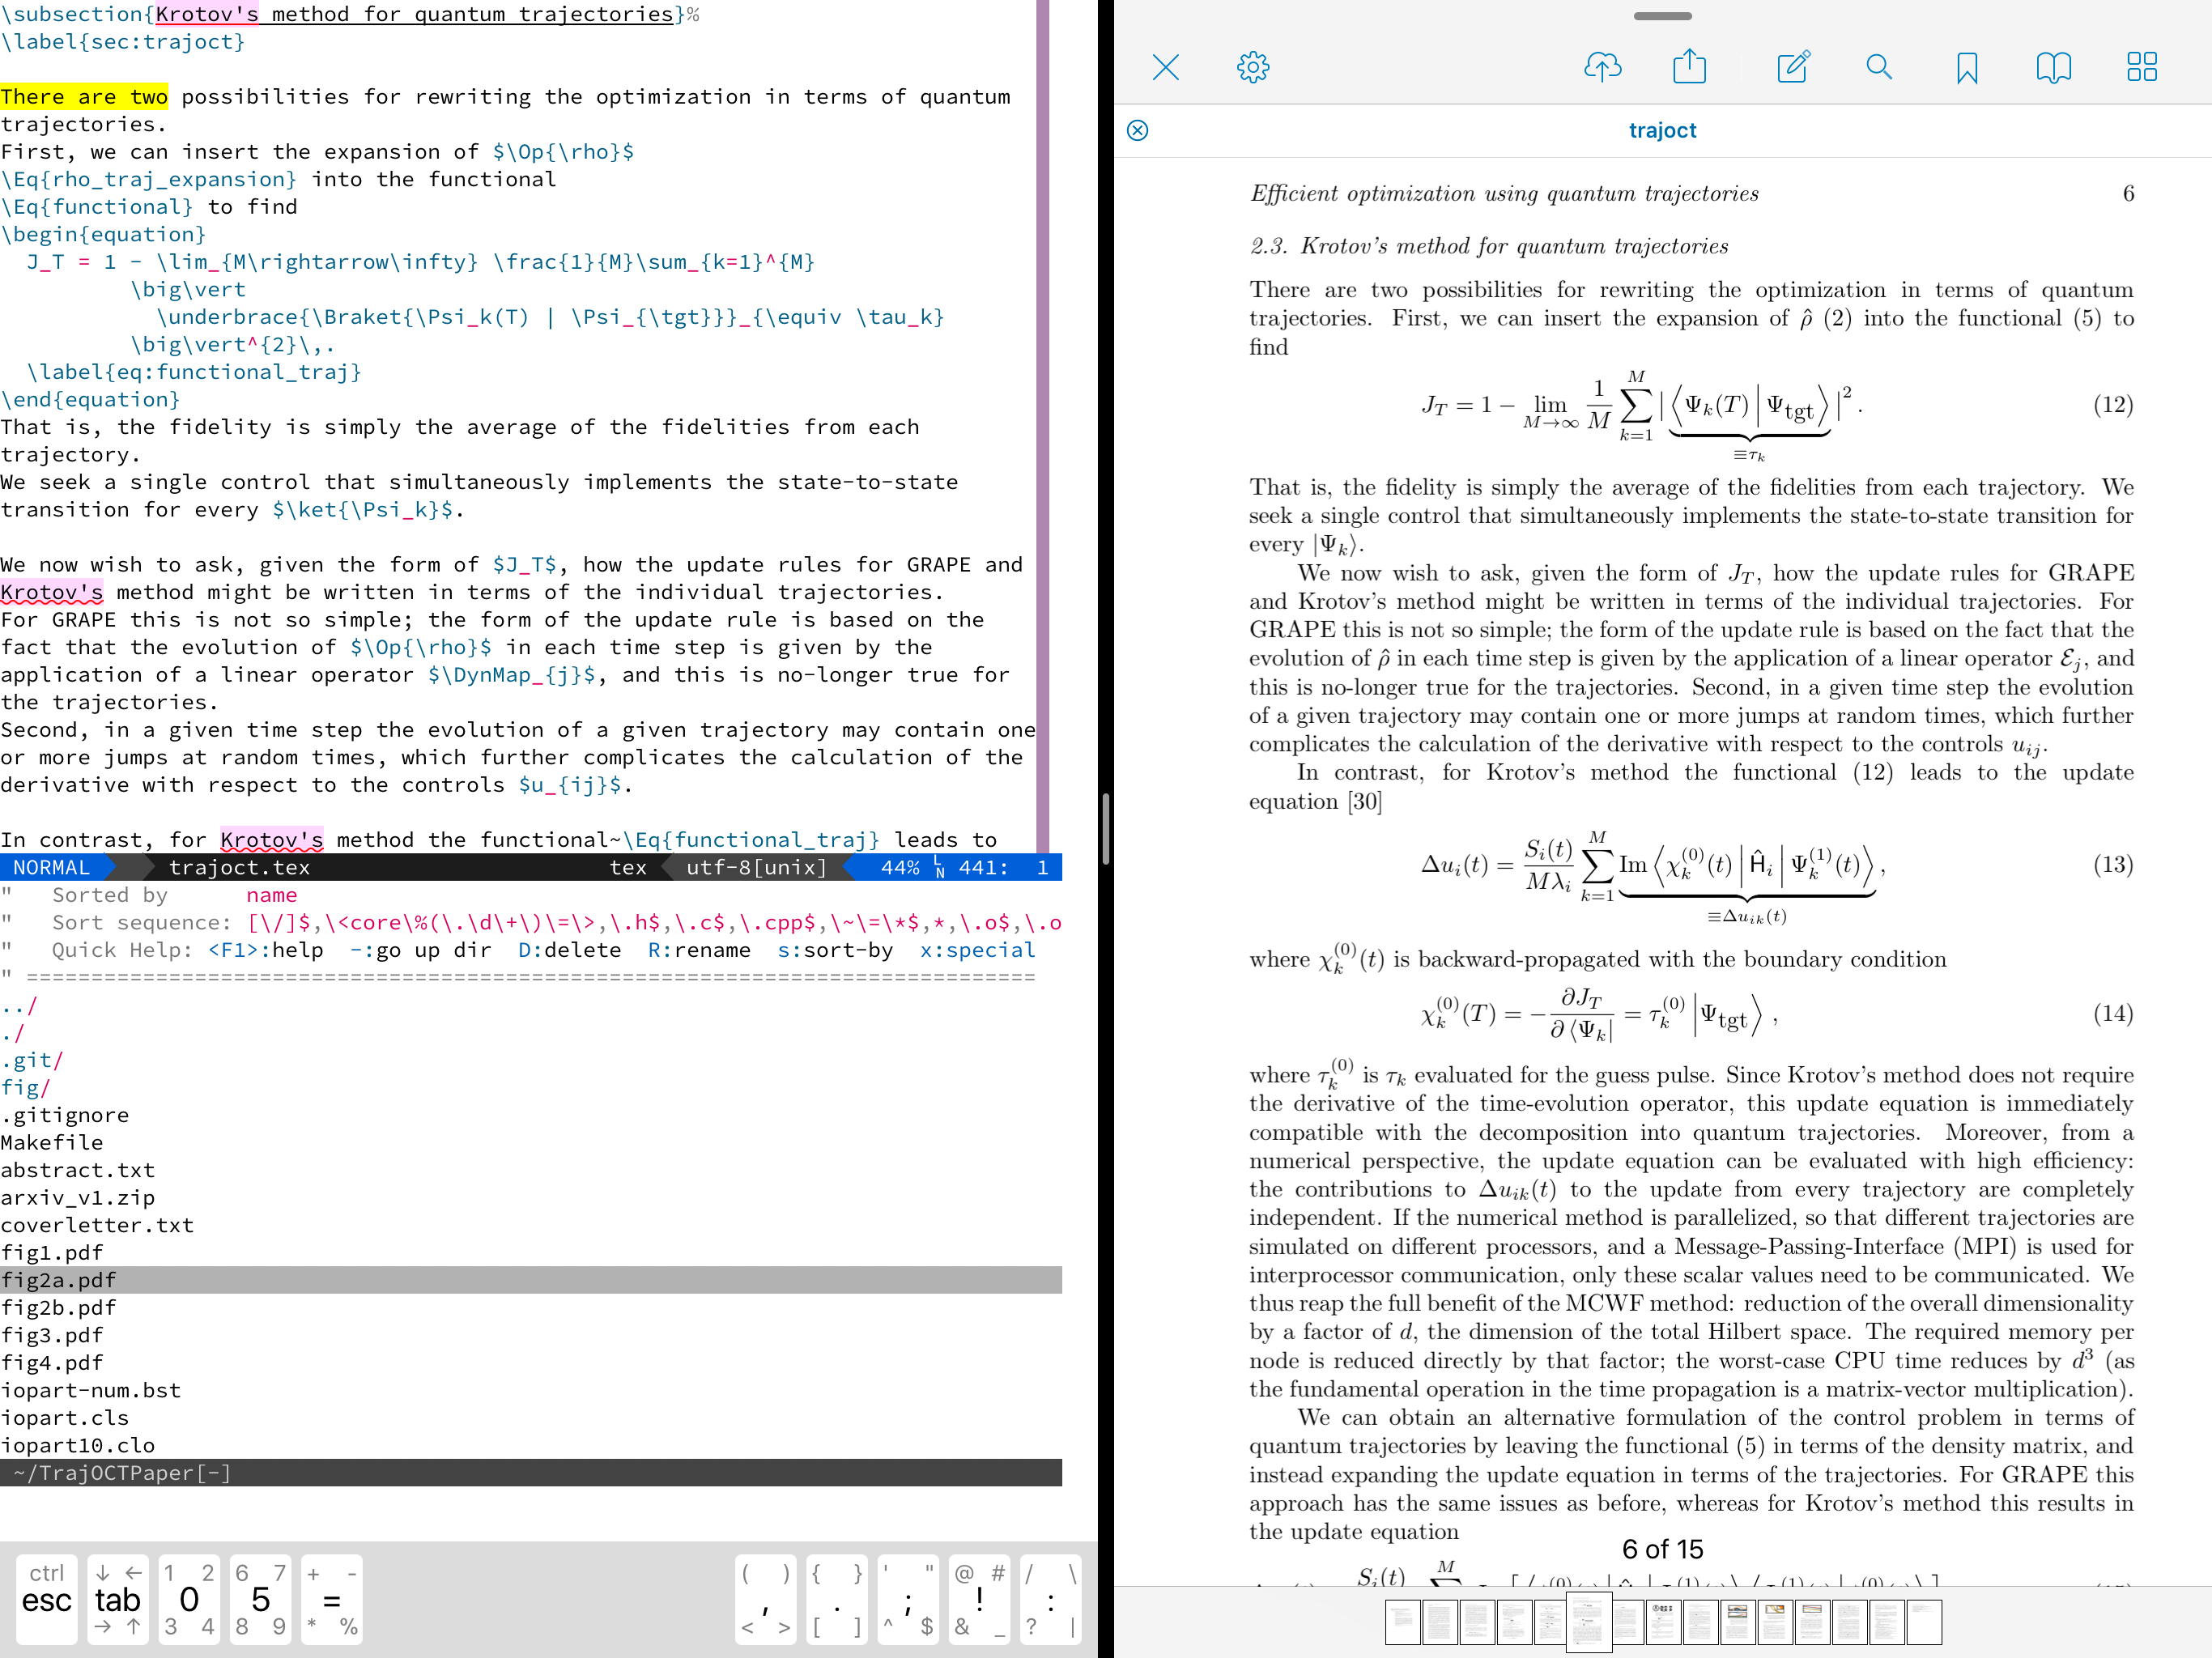 Editing LaTeX on the iPad with iVim - Michael Goerz